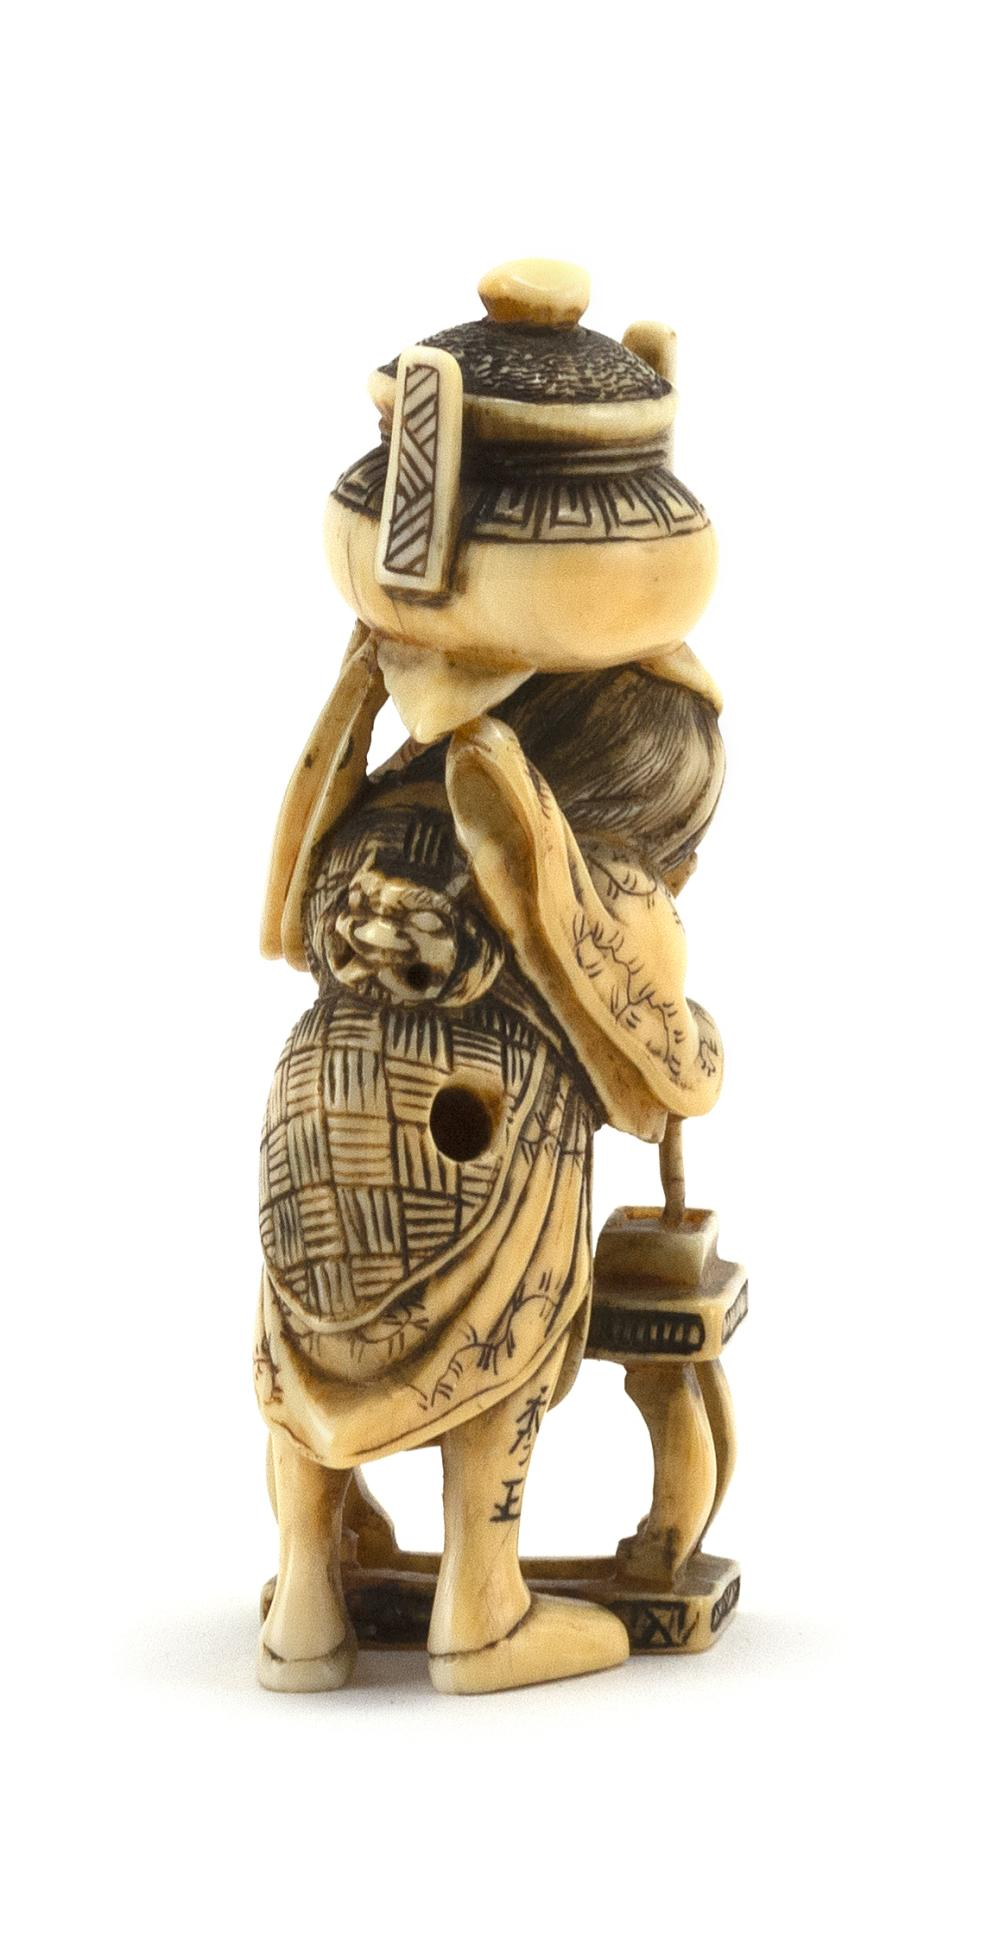 JAPANESE IVORY NETSUKE In the form of a scholar holding an inkpot on his shoulder. Signed. Height 2.5